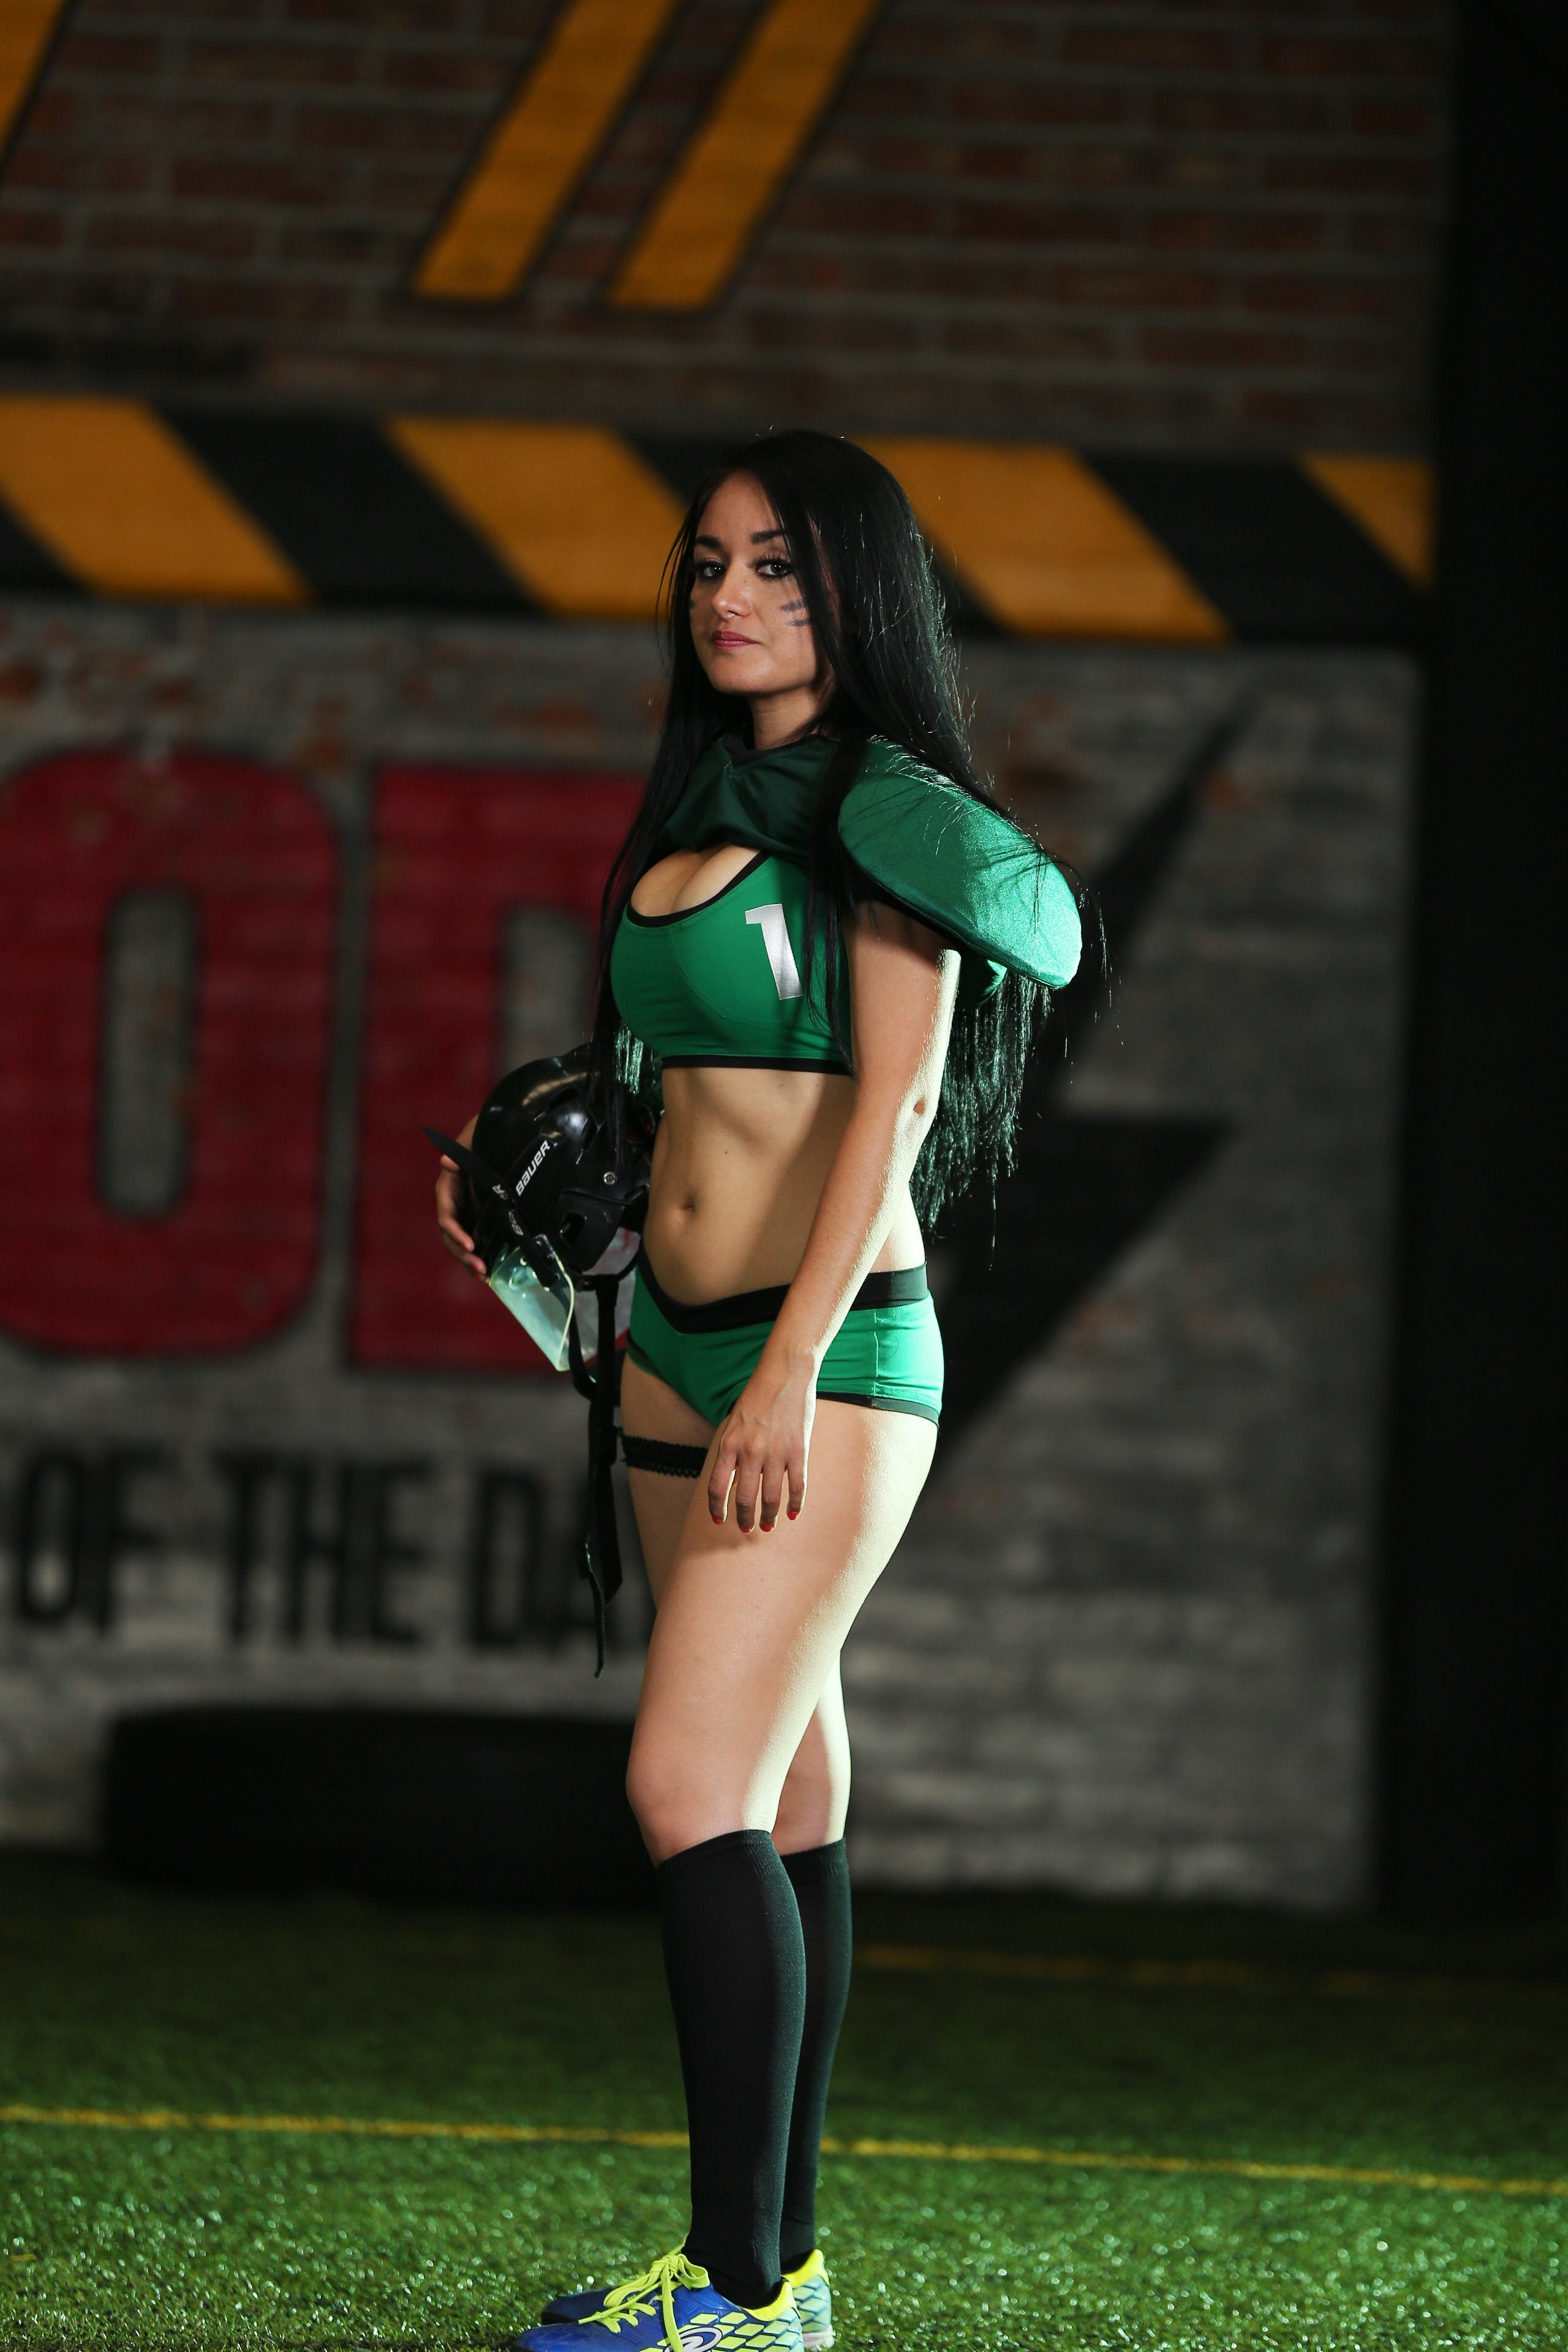 Woman Wearing Green Sports Uniform